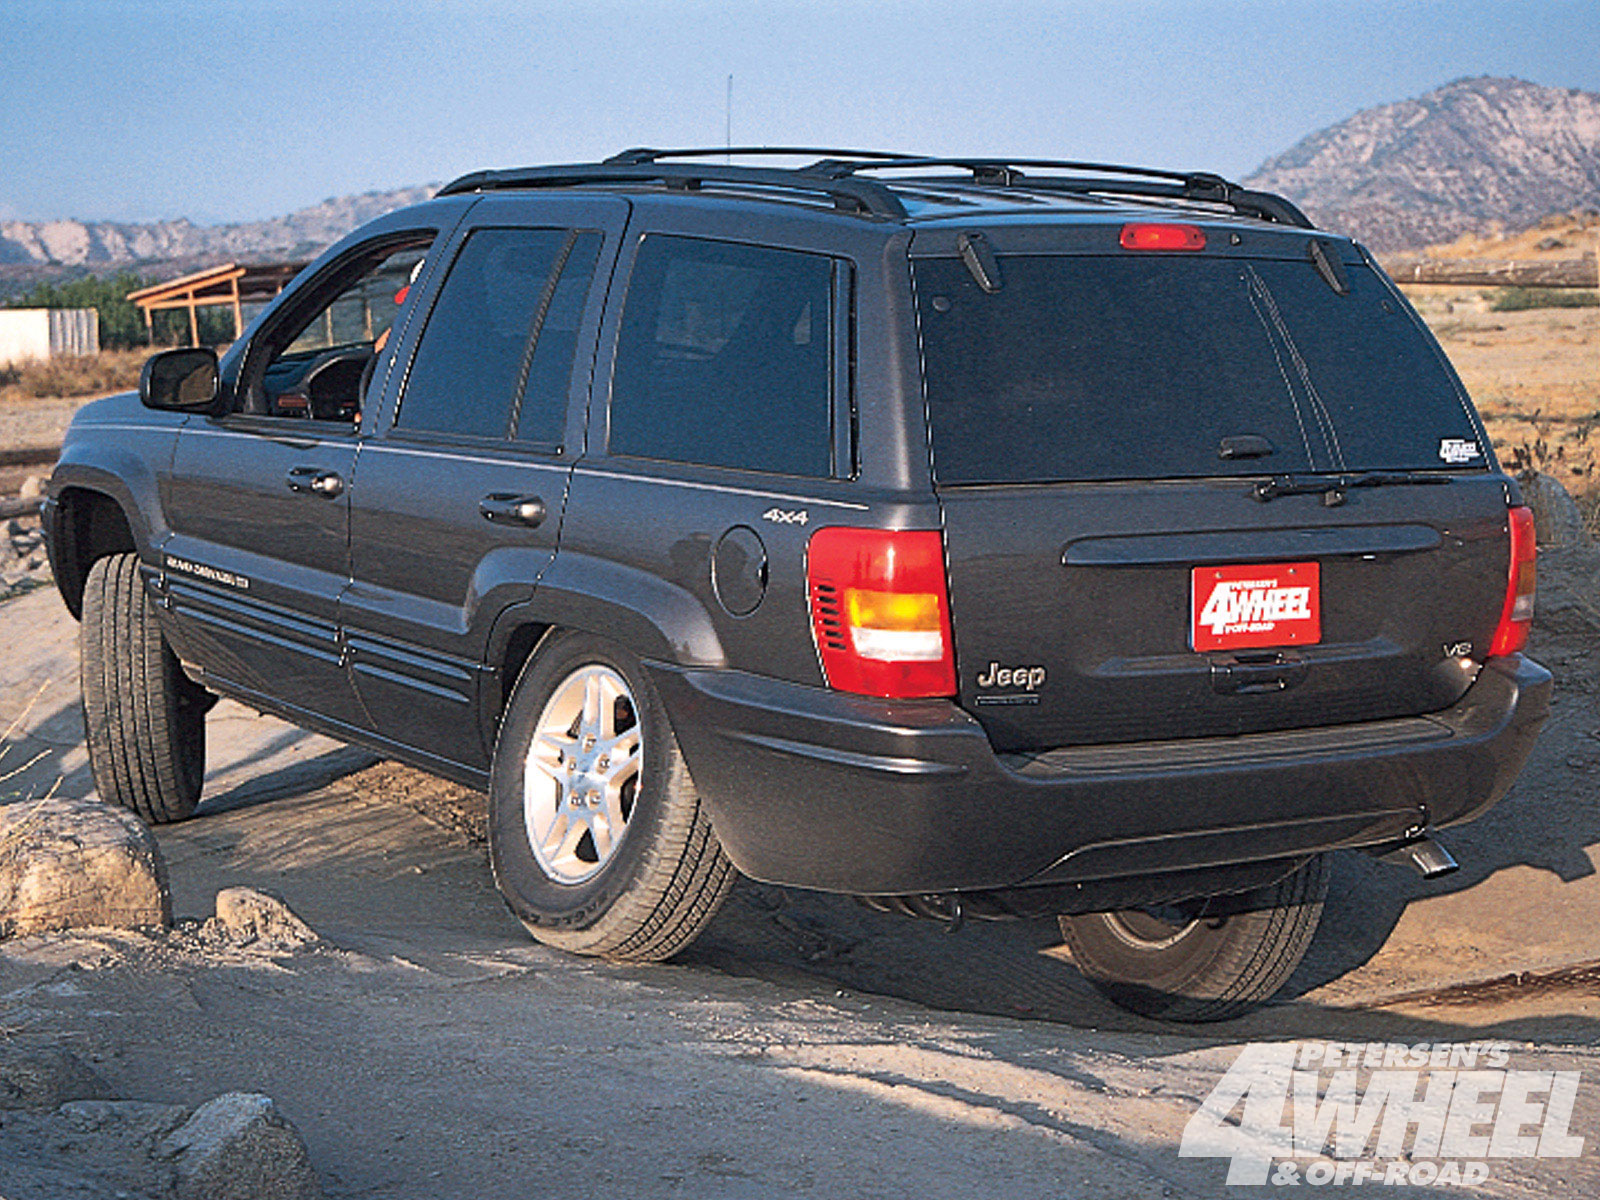 131 9902 05 o+131 9902 1999 4x4 of the year winner jeep grand cherokee+rear shot